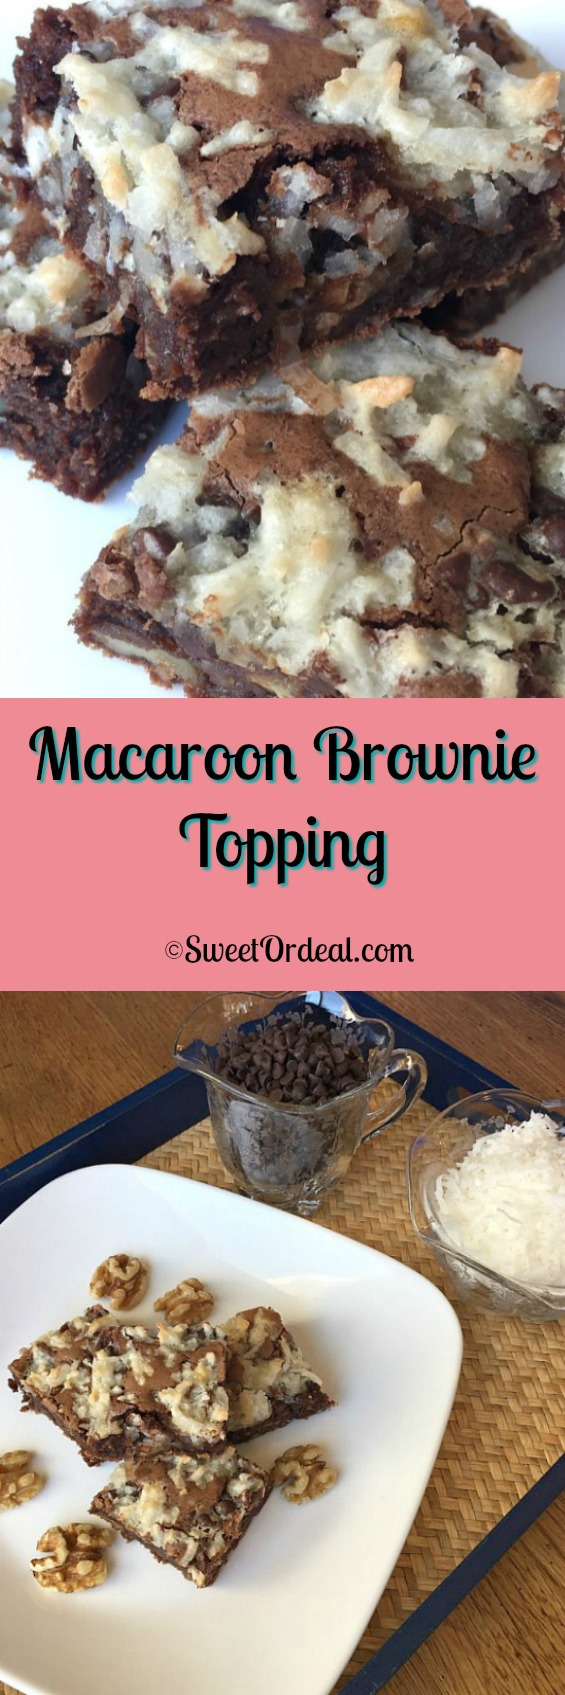 Macaroon Brownie Topping